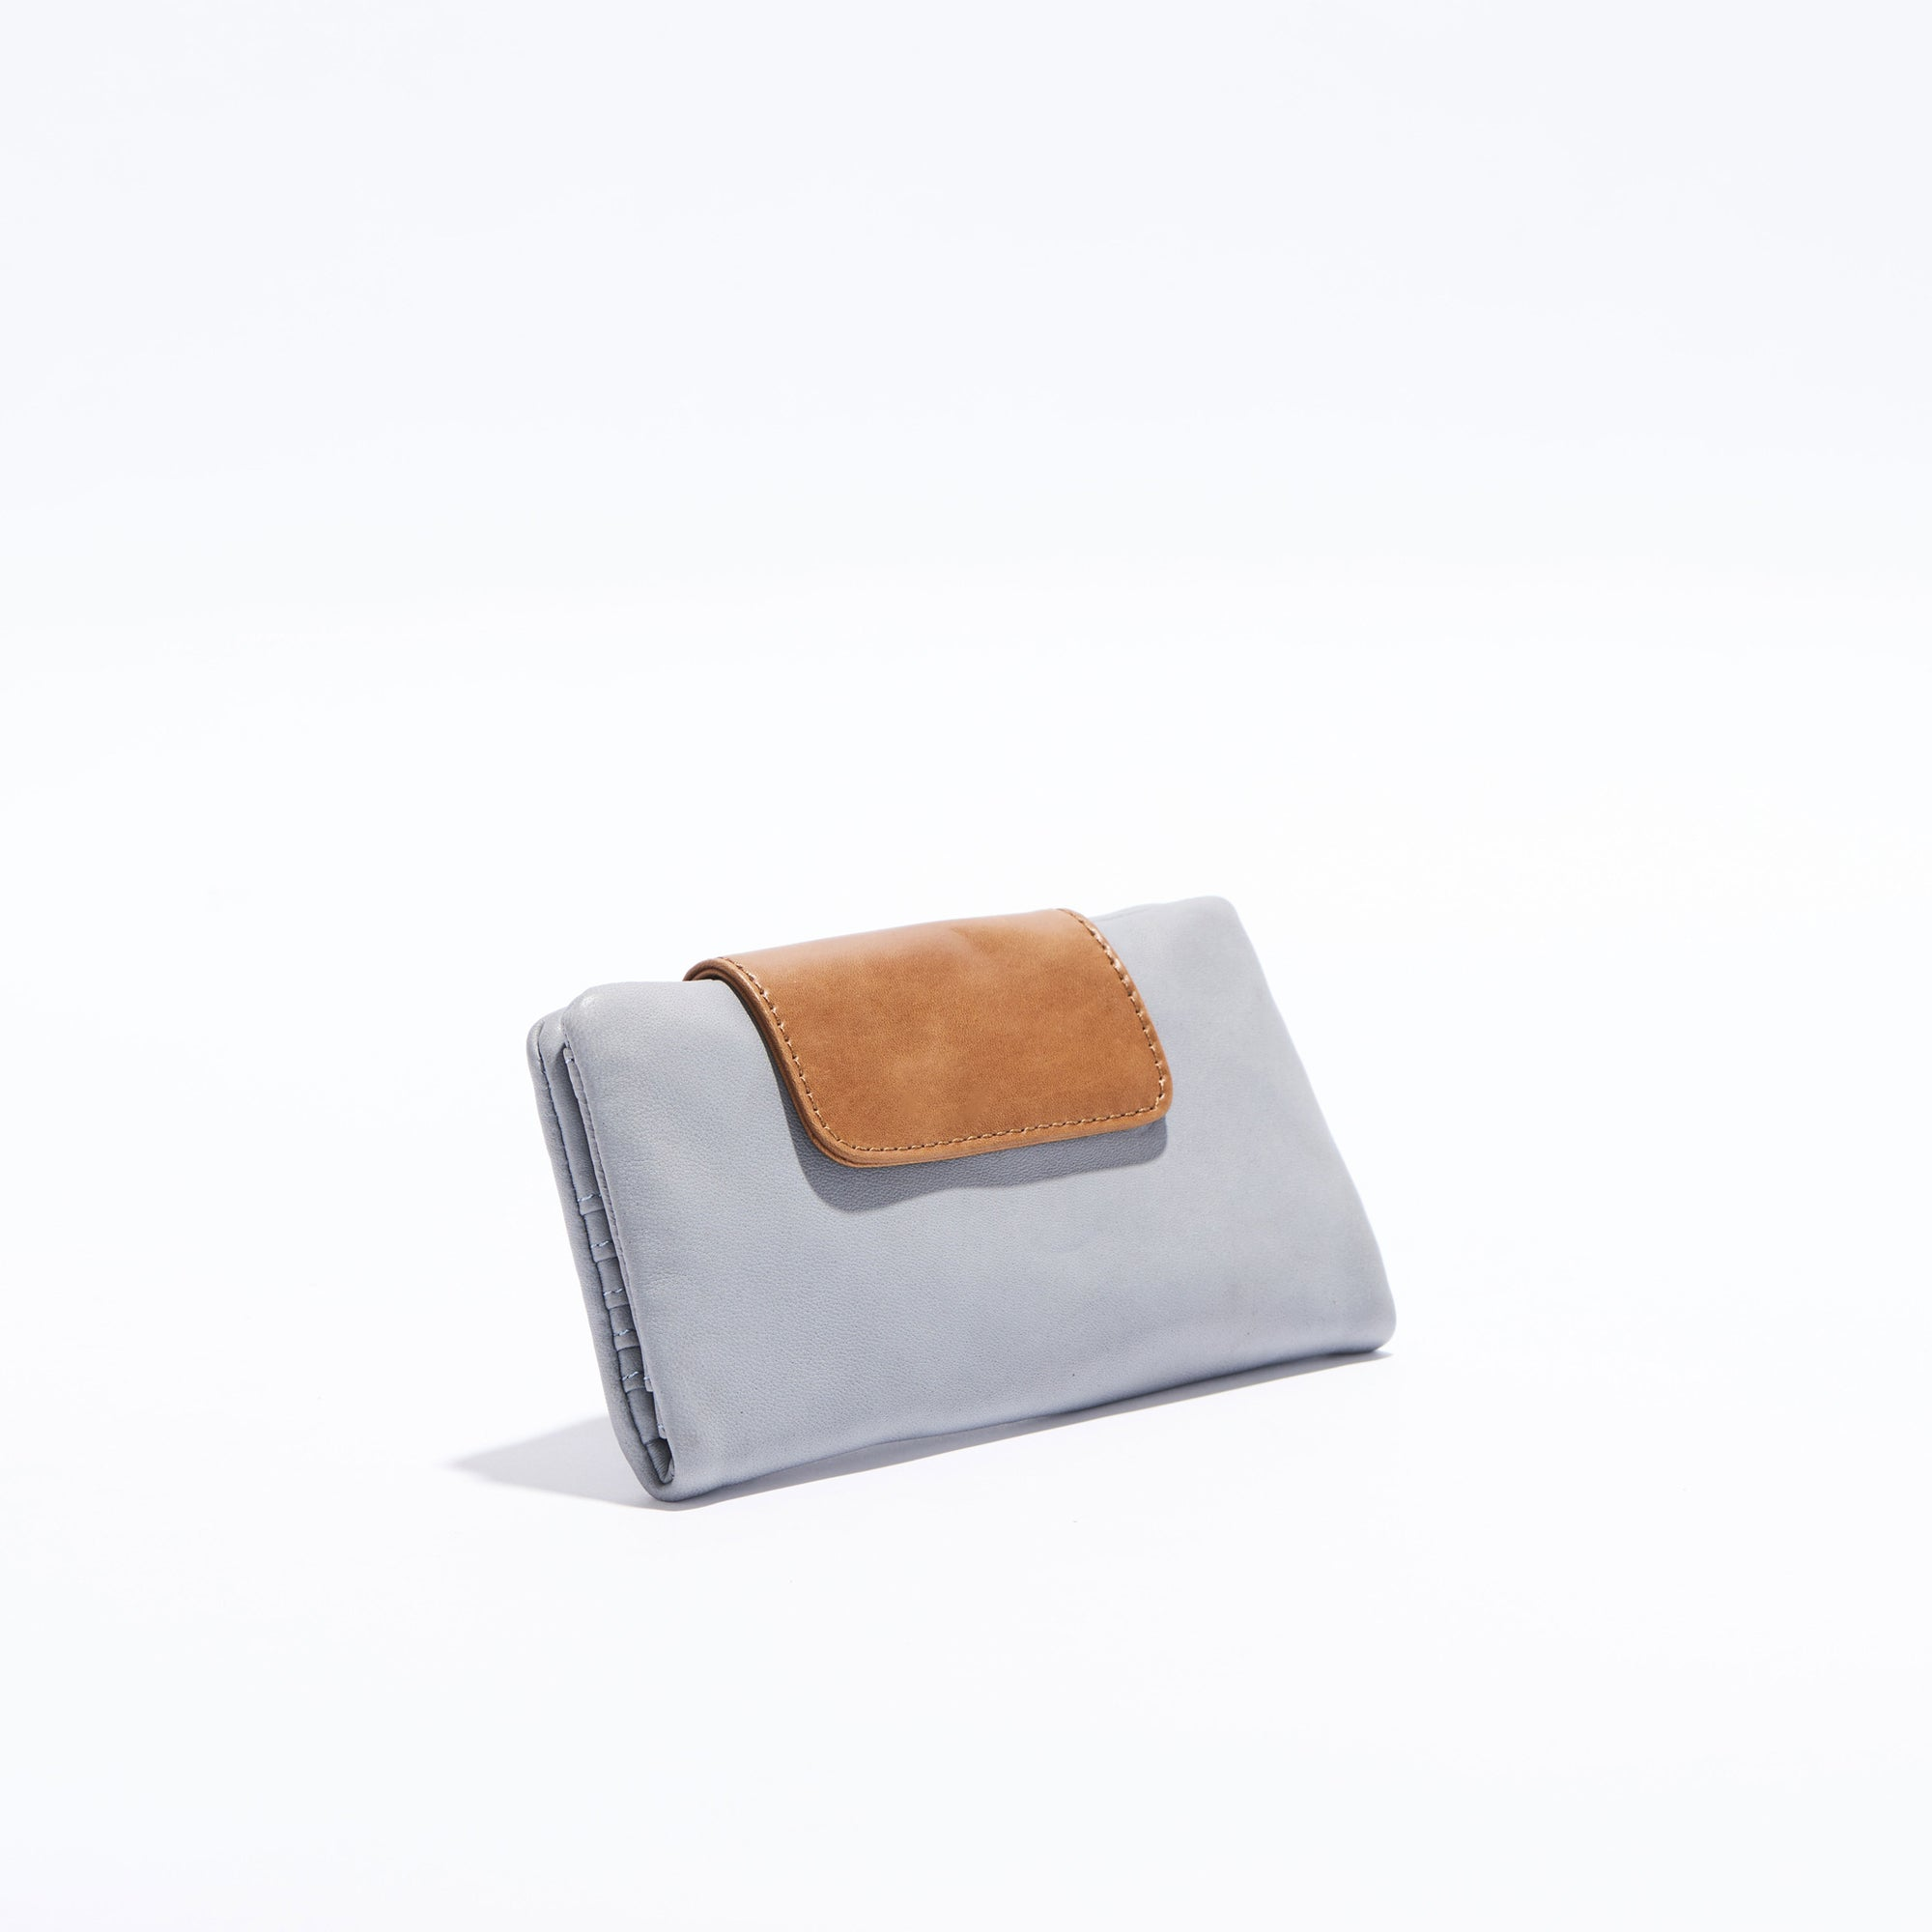 The Eclipse Wallet - Storm / Tan